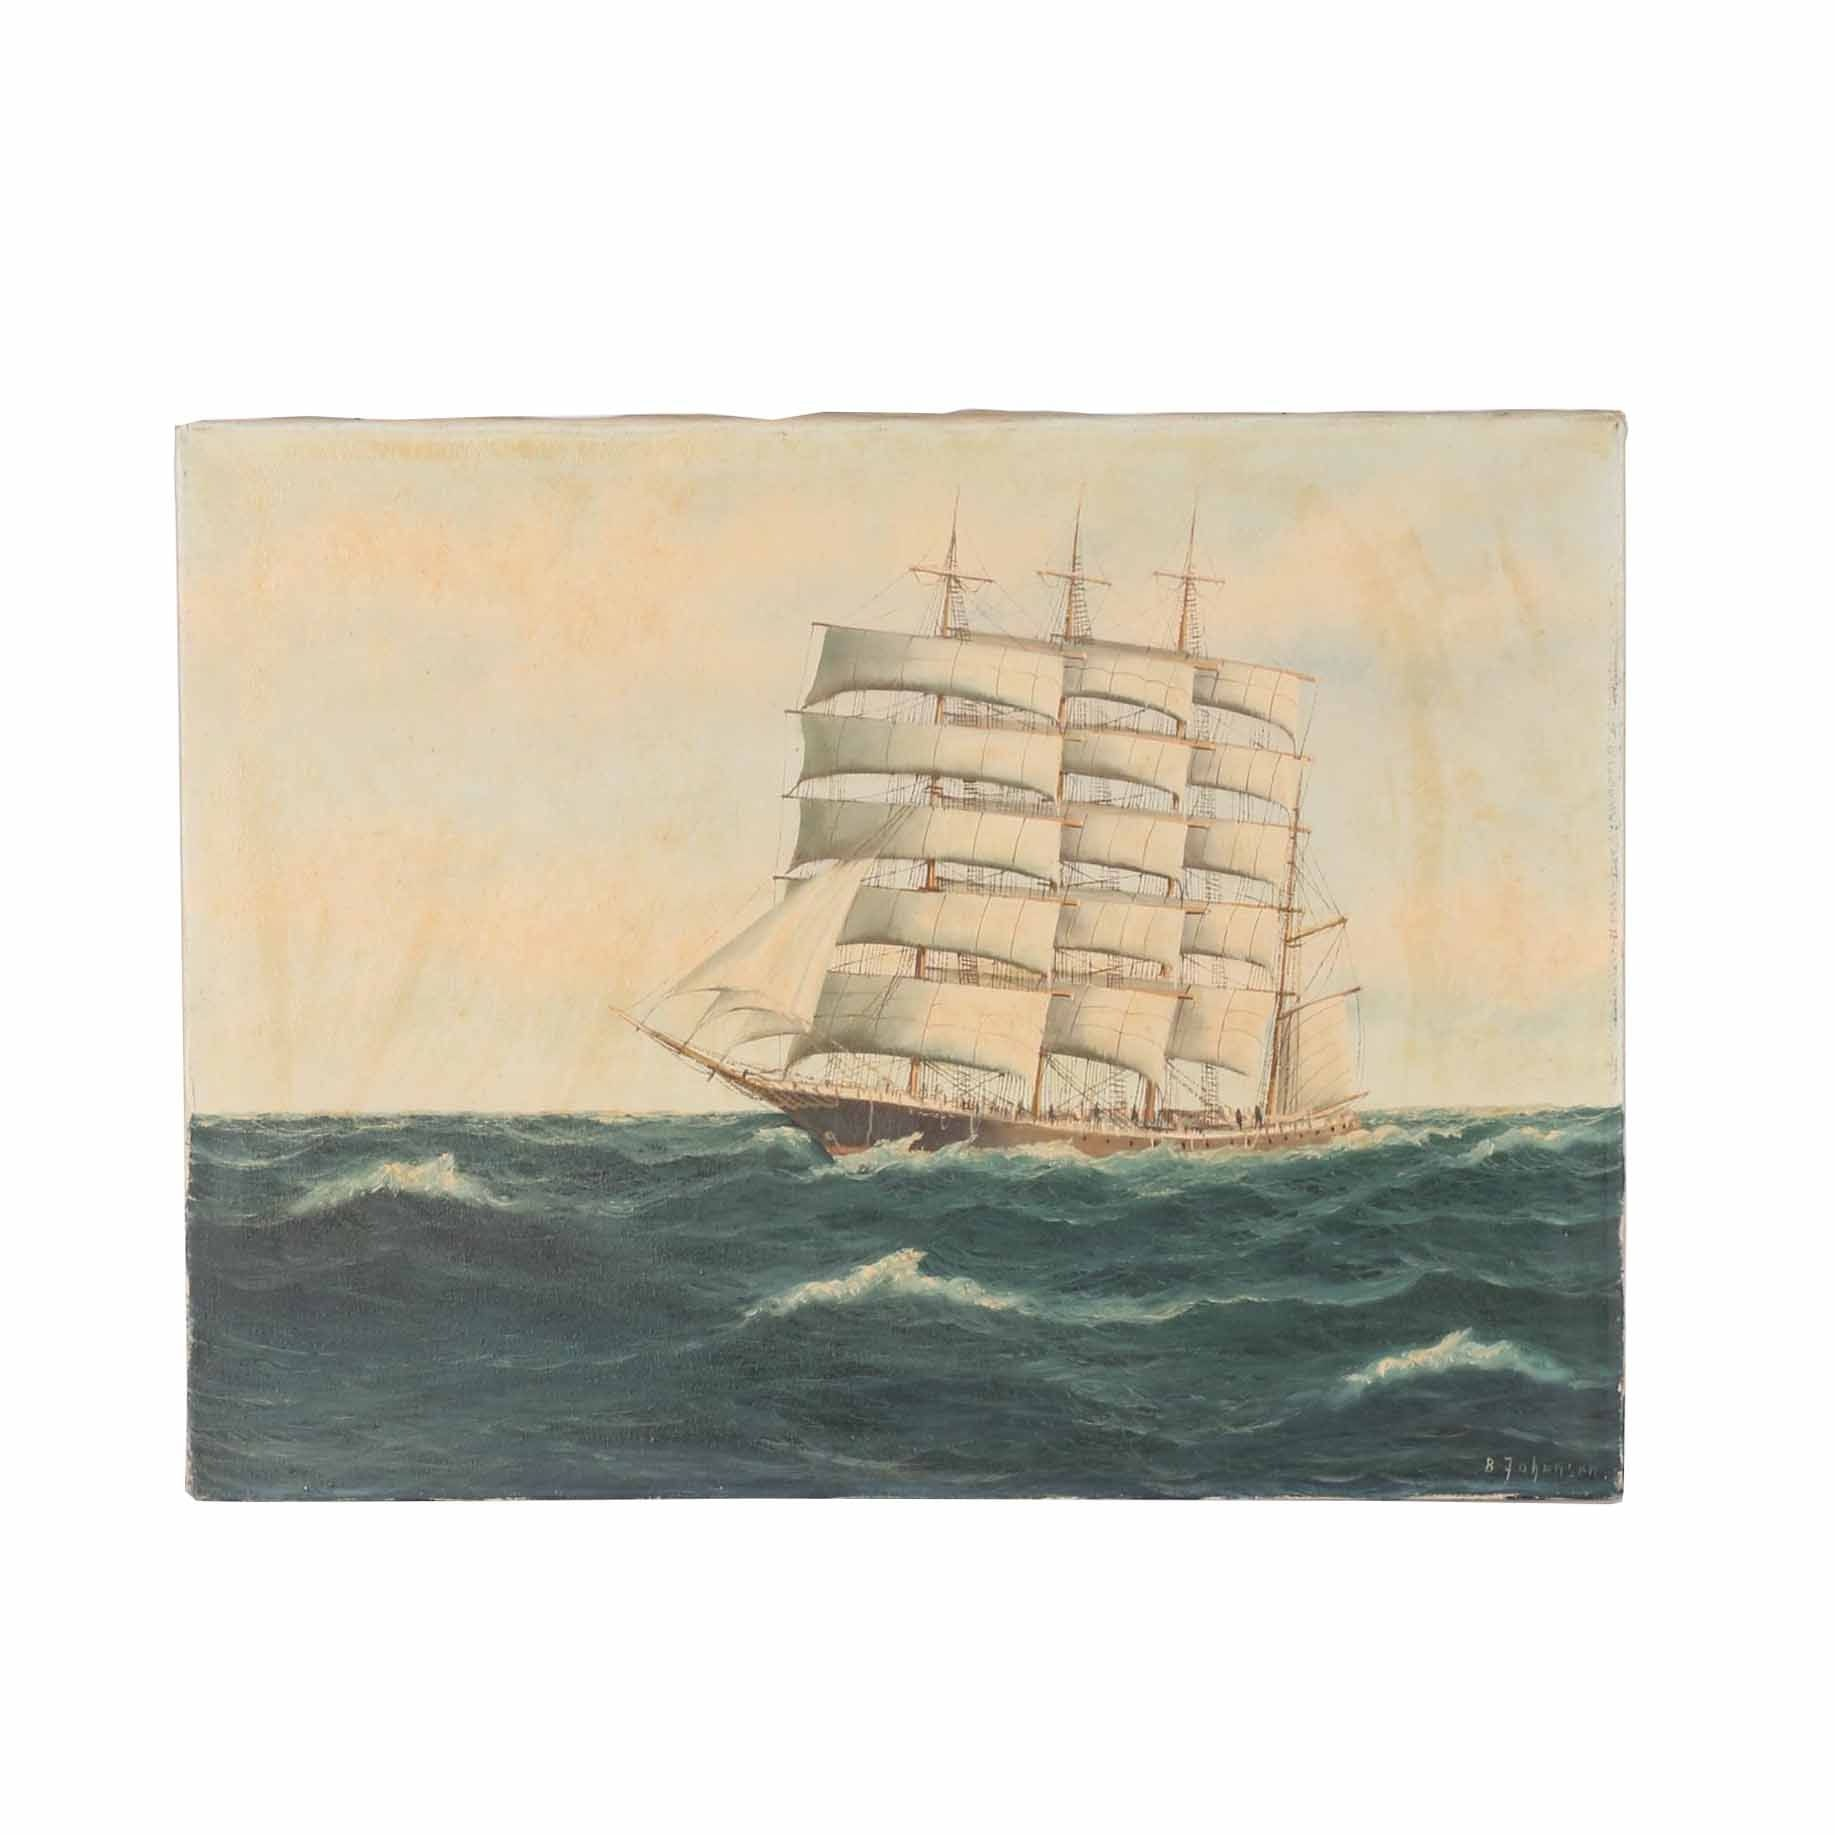 B. Johansen Oil Painting of a Ship